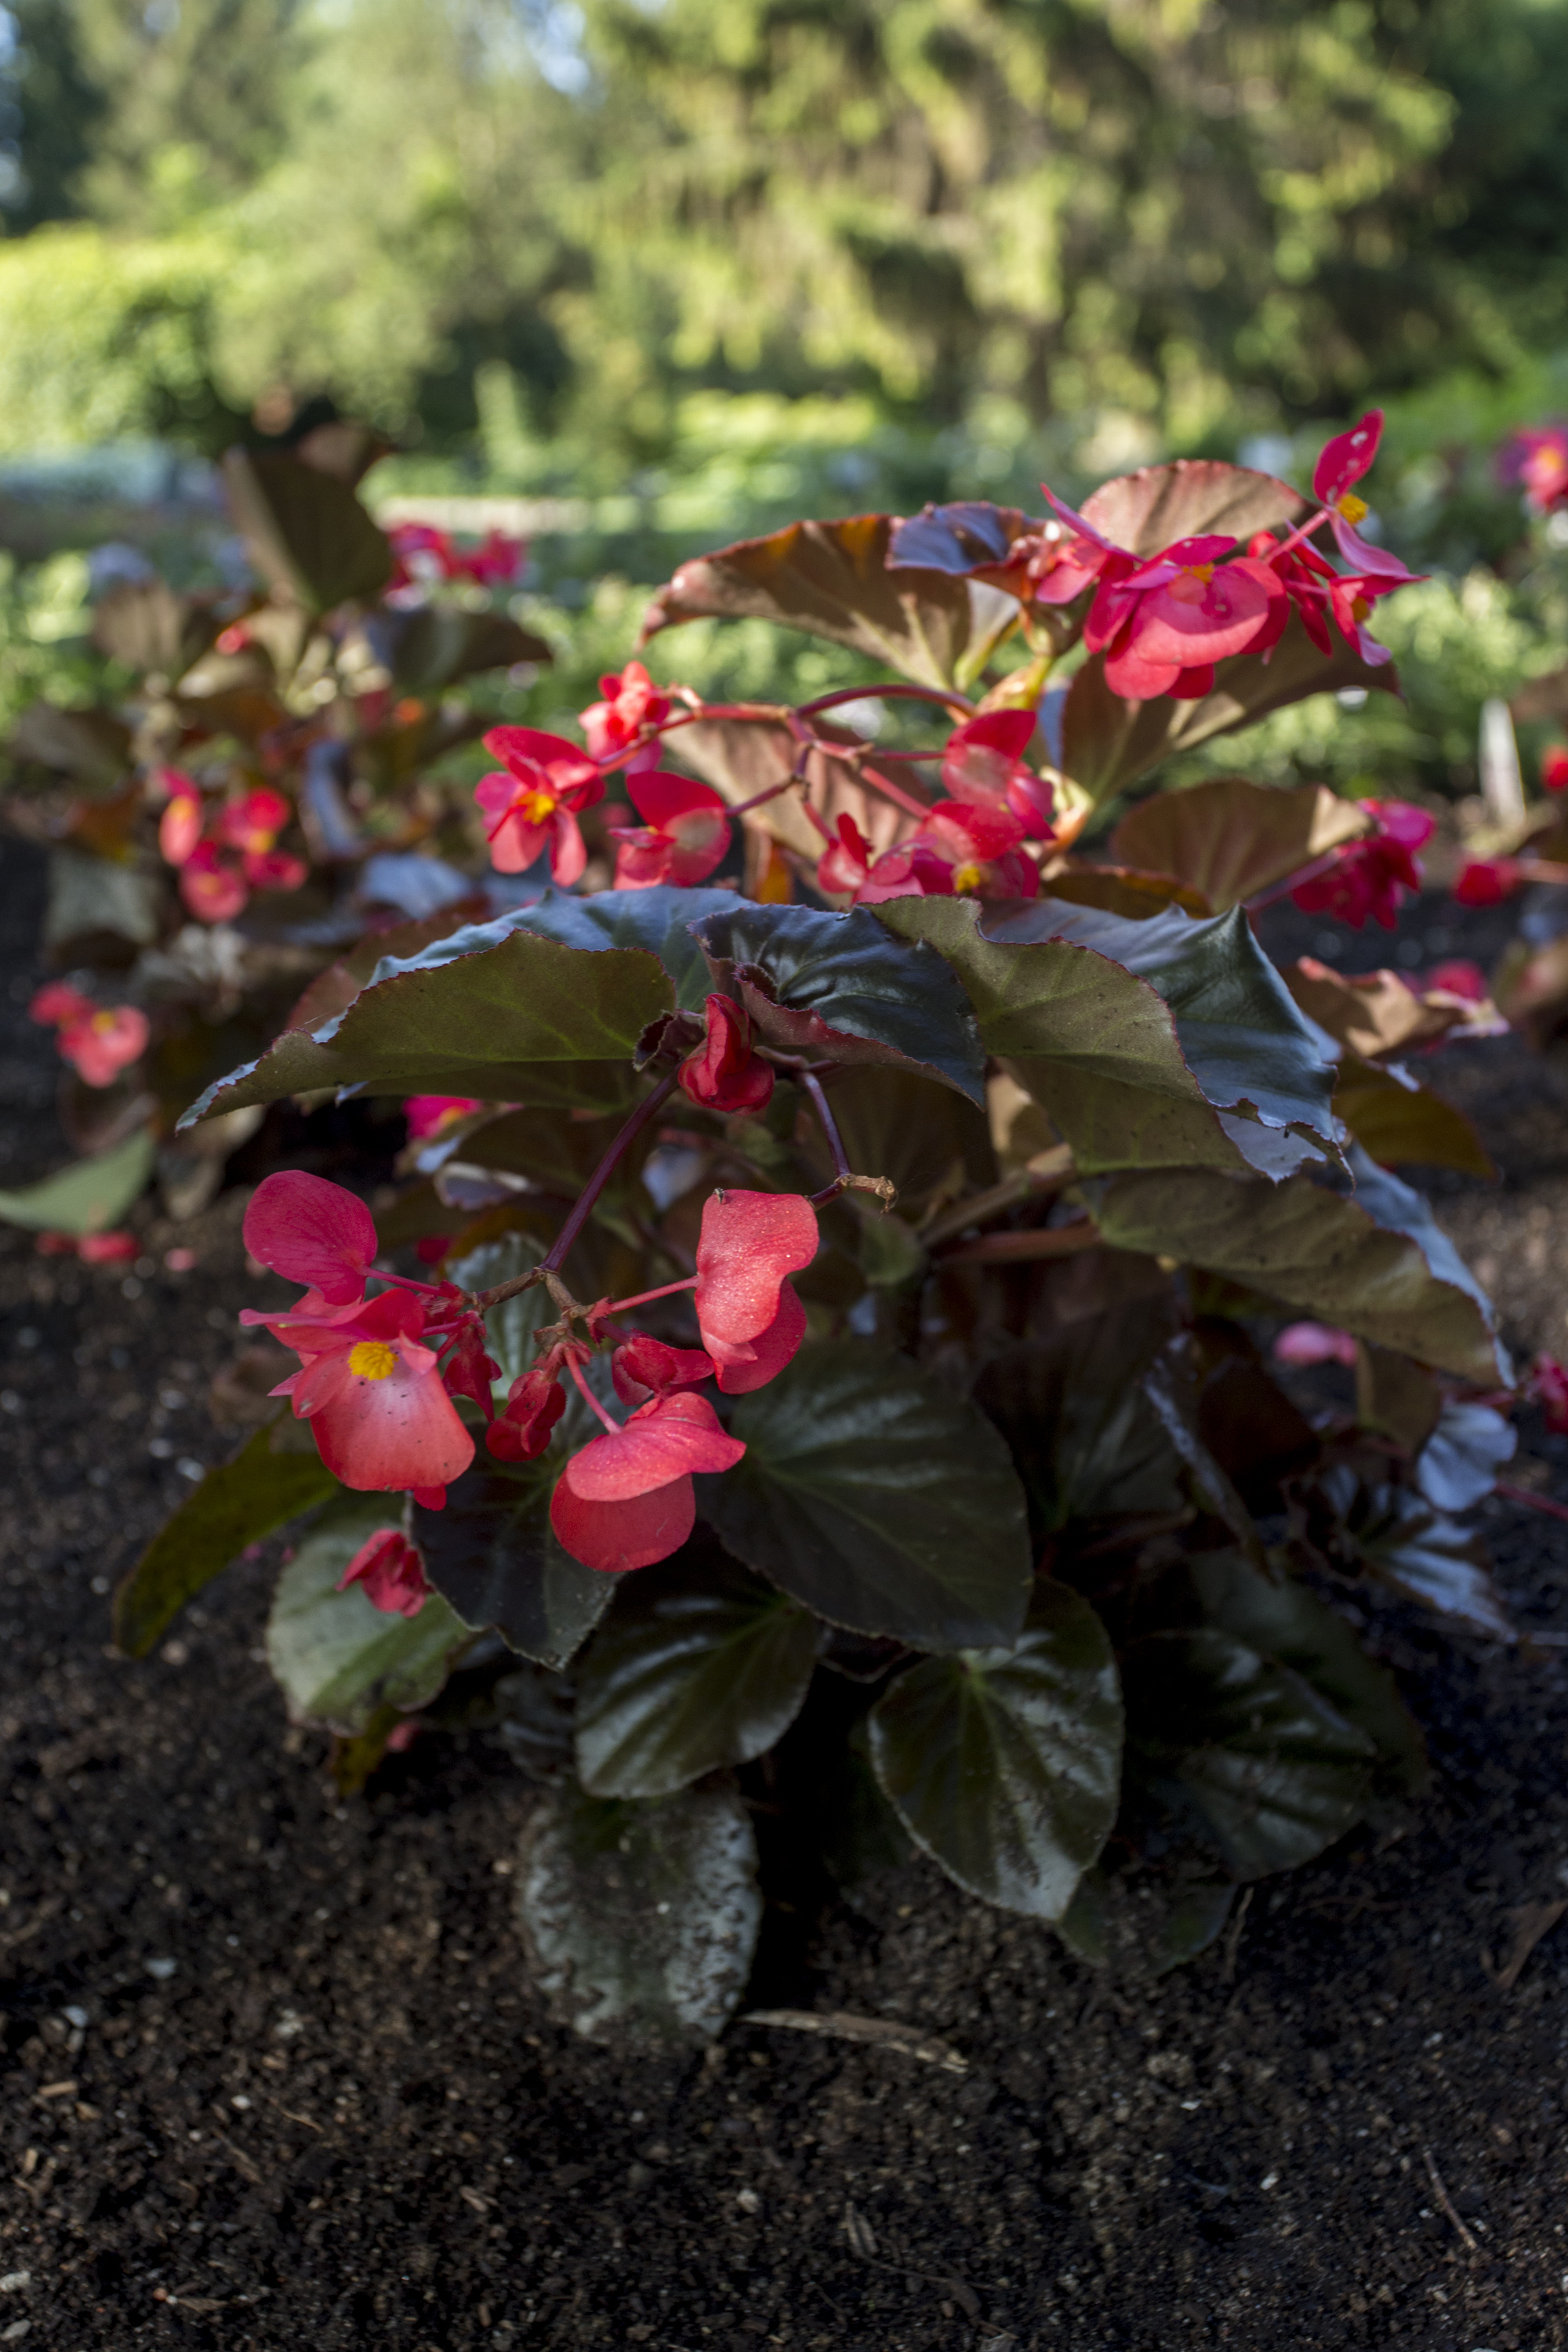 Begonia Viking™ XL Red on Chocolate All-America Selections 2019, le bégonia Viking™ XL Red on Chocolate (Sakata Seed Corporation, Japon, 2019)